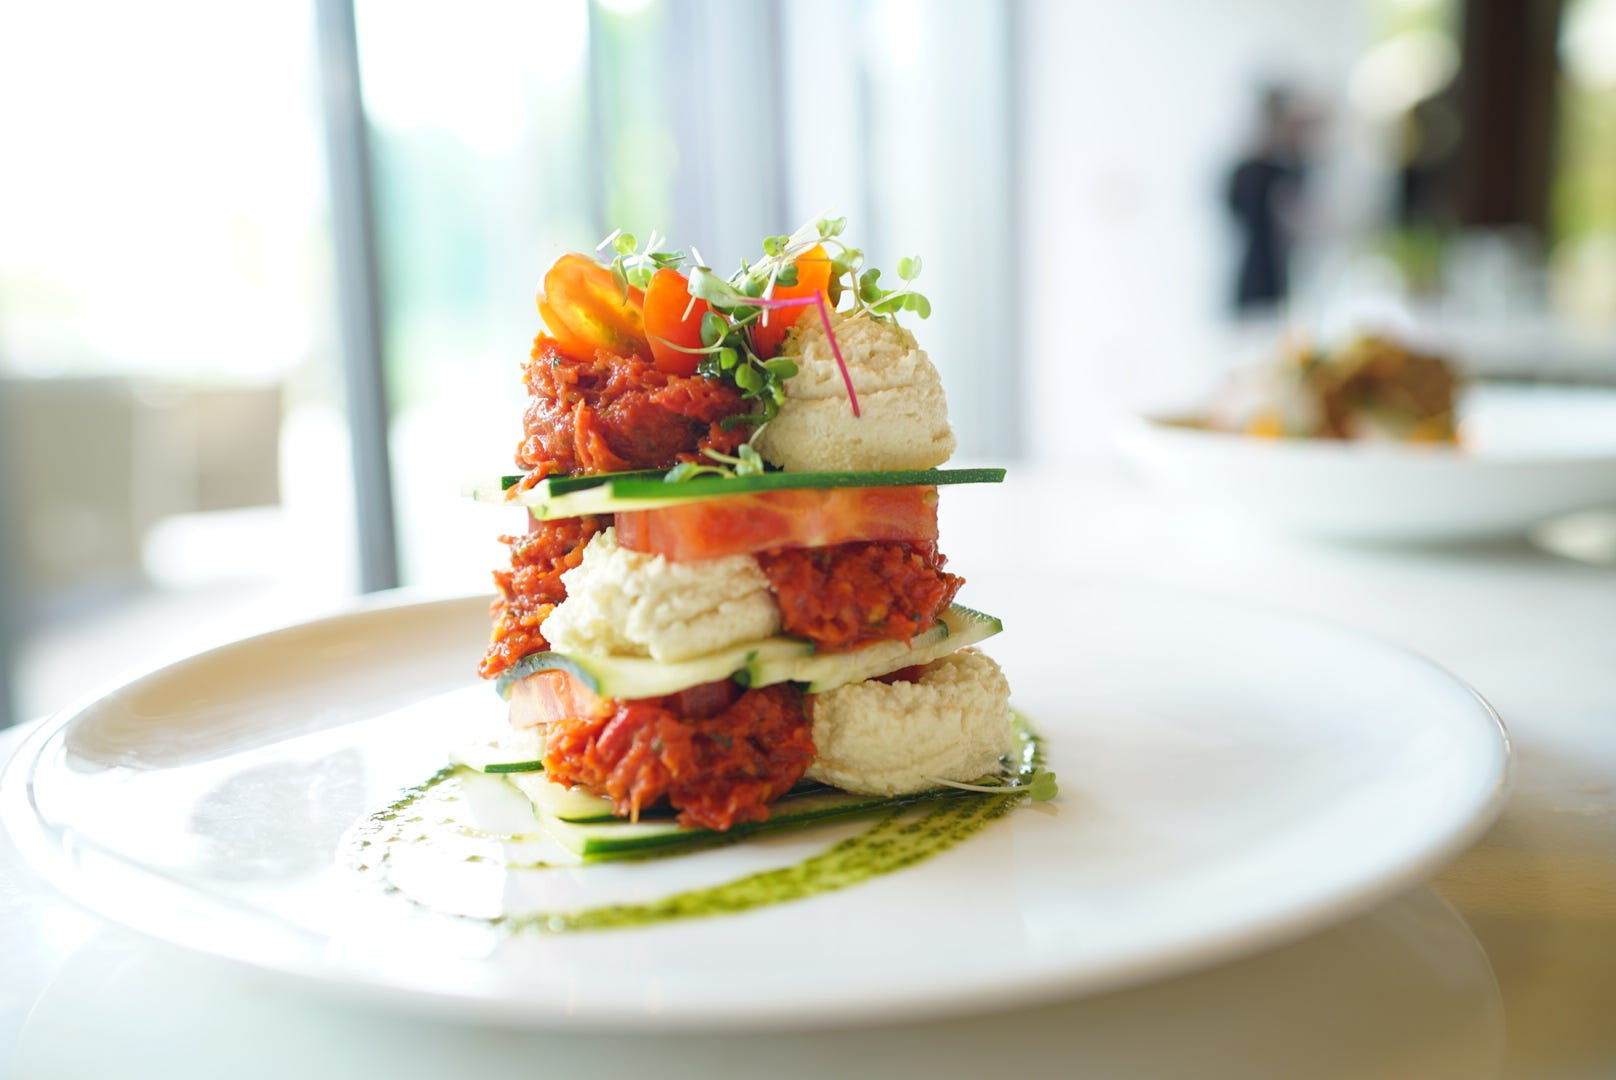 Year of the Veg: Hotel group goes vegetarian for 365 days